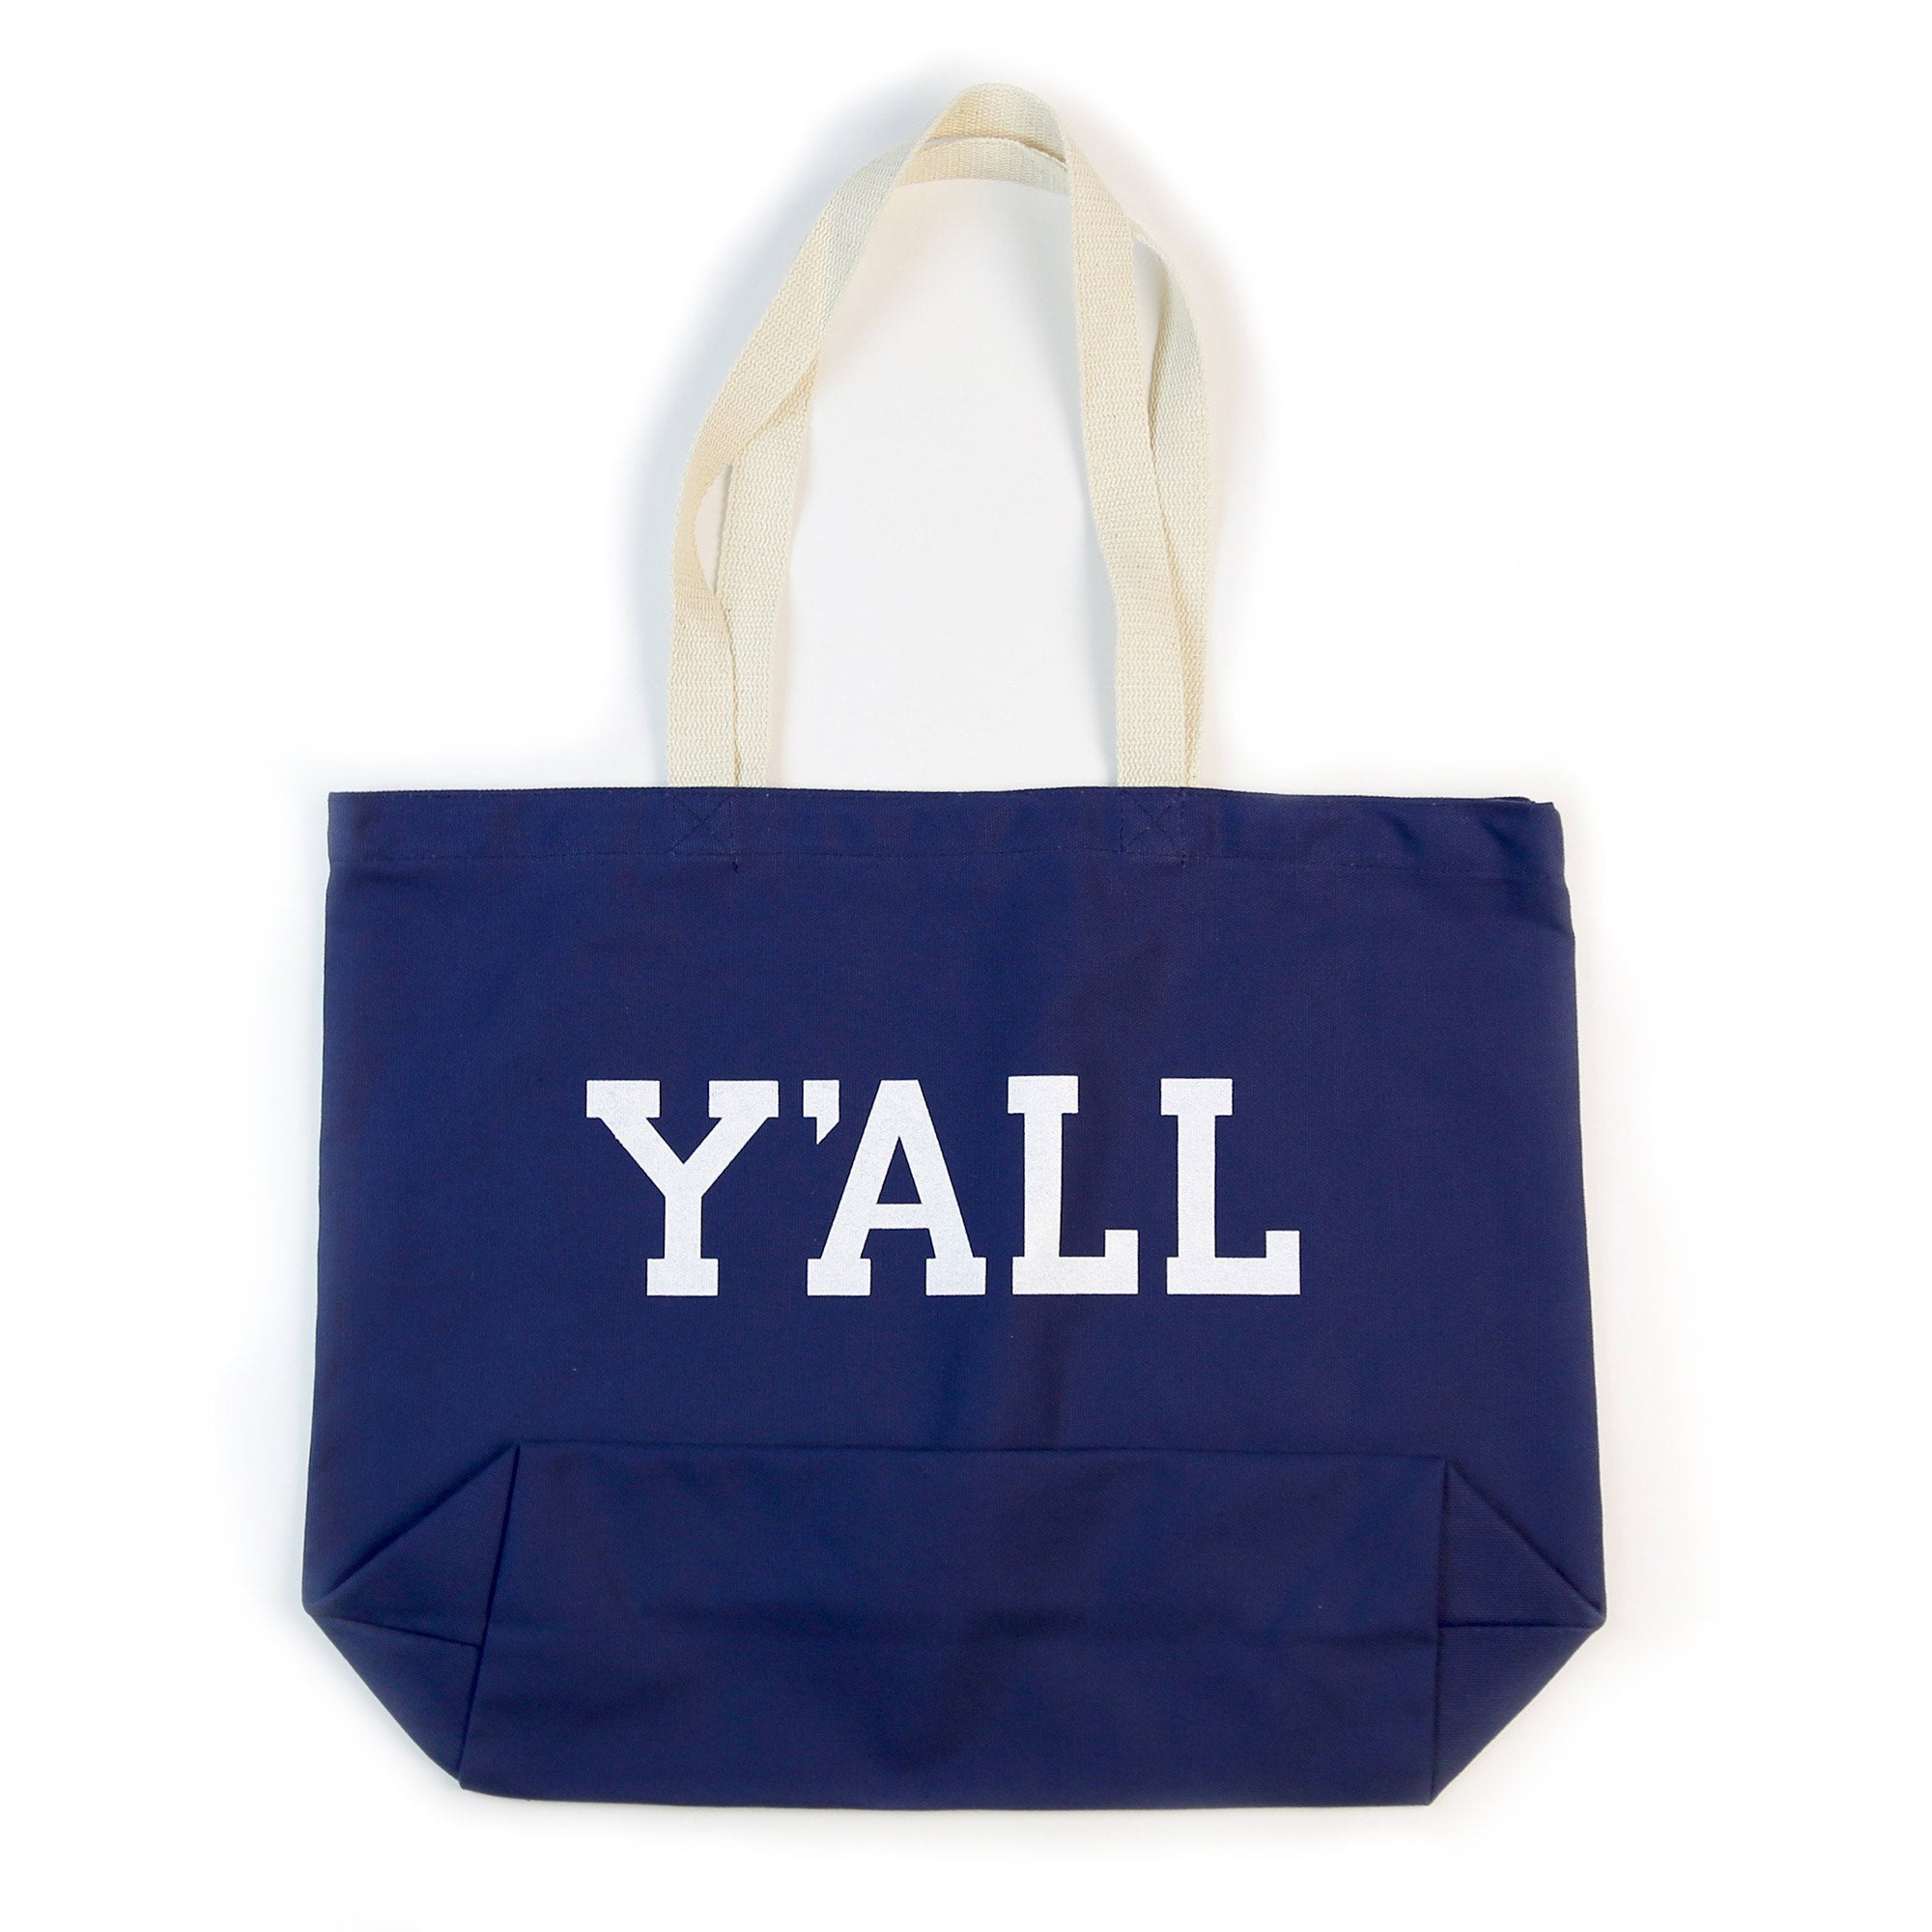 Y'ALL Tote Bag-Odds and Ends-KY for KY Store